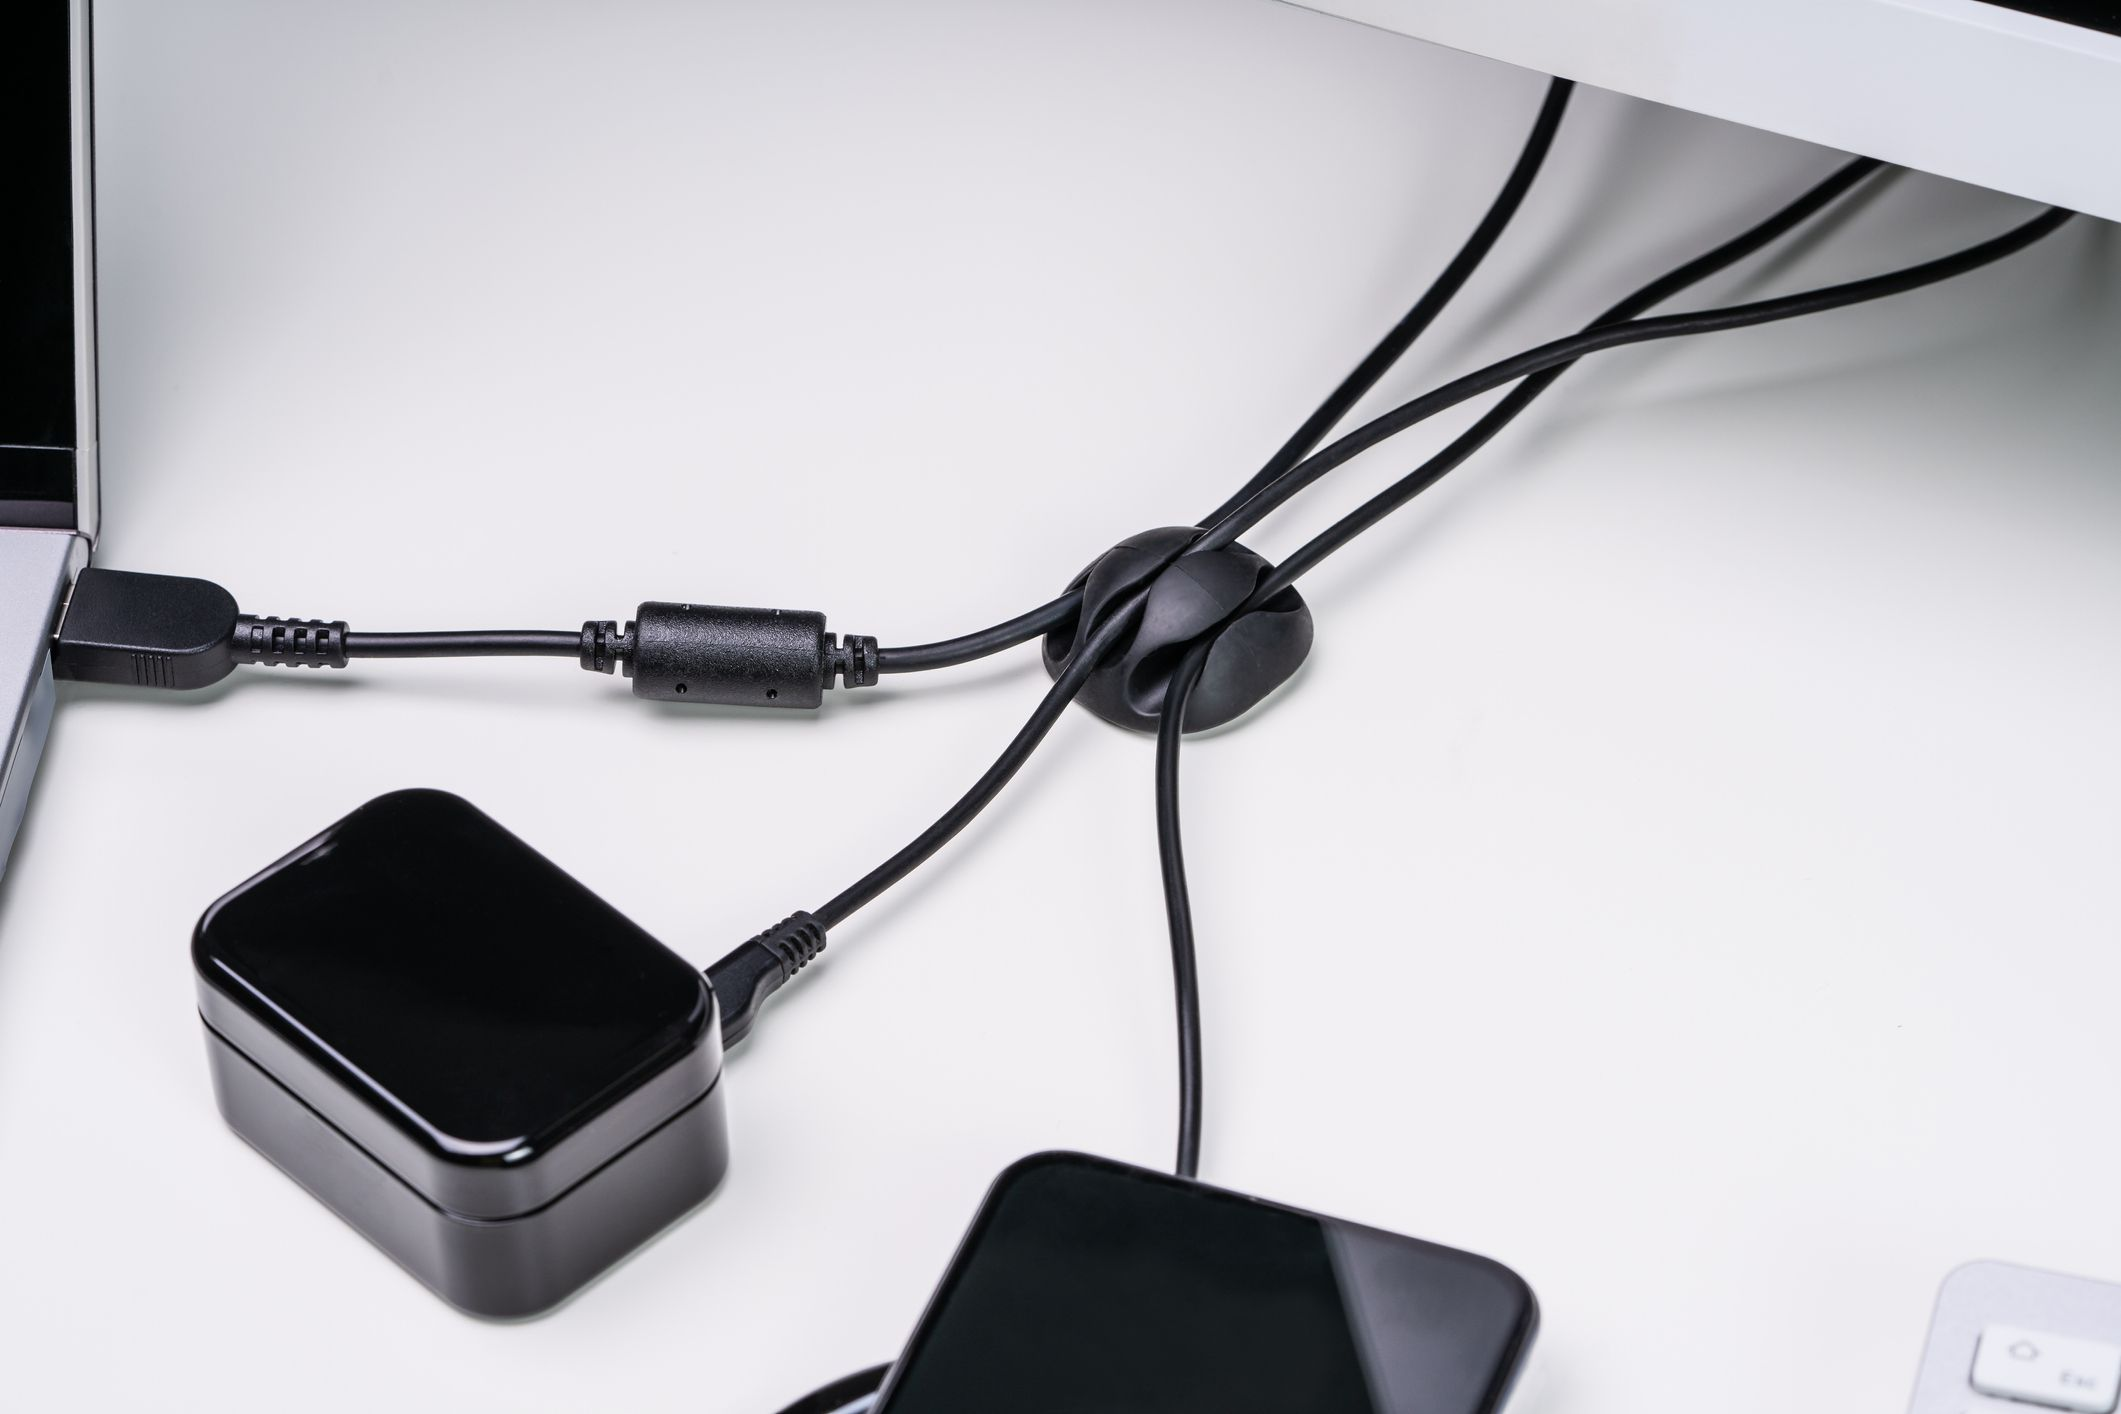 cable organizer at a desk